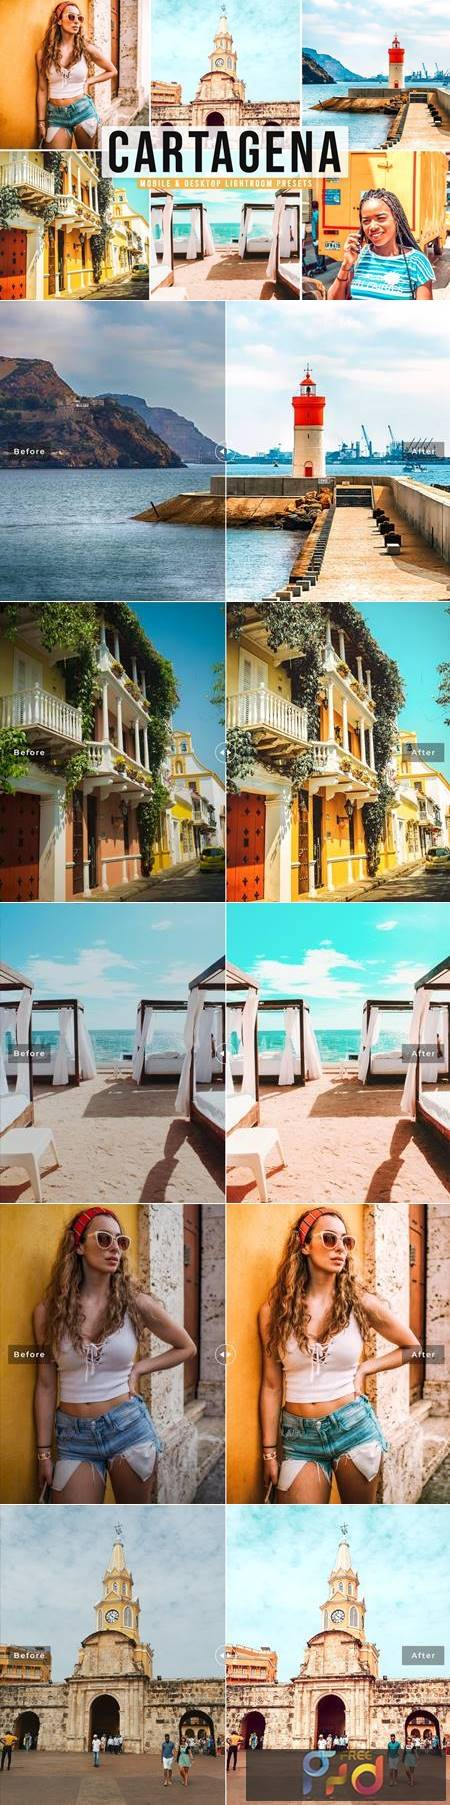 Cartagena Mobile & Desktop Lightroom Presets NWVDQCB 1